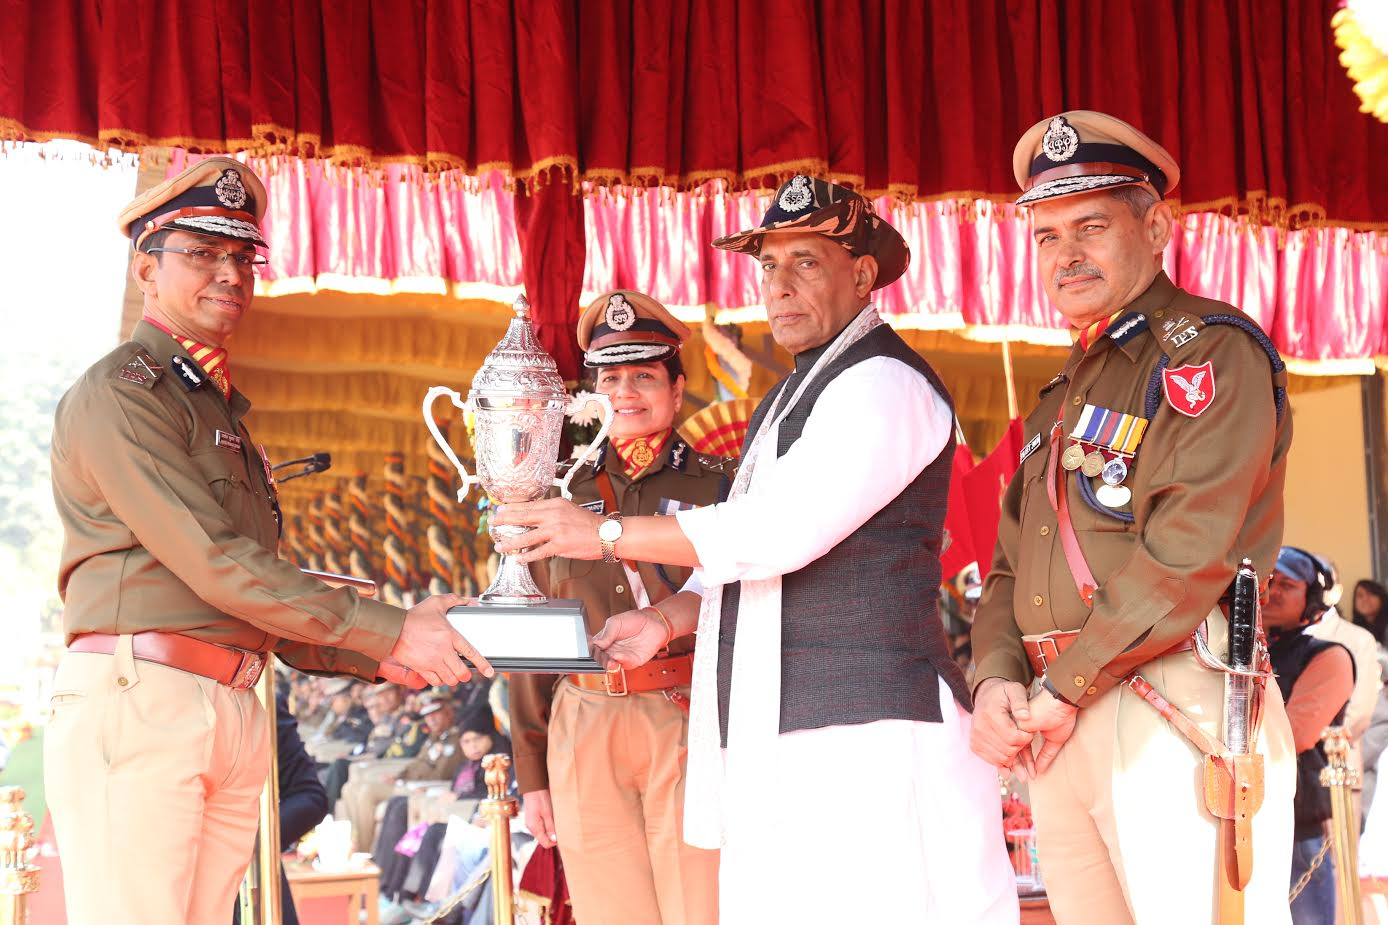 shri-rajnath-singh-giving-medals-to-ssb-jawans-5